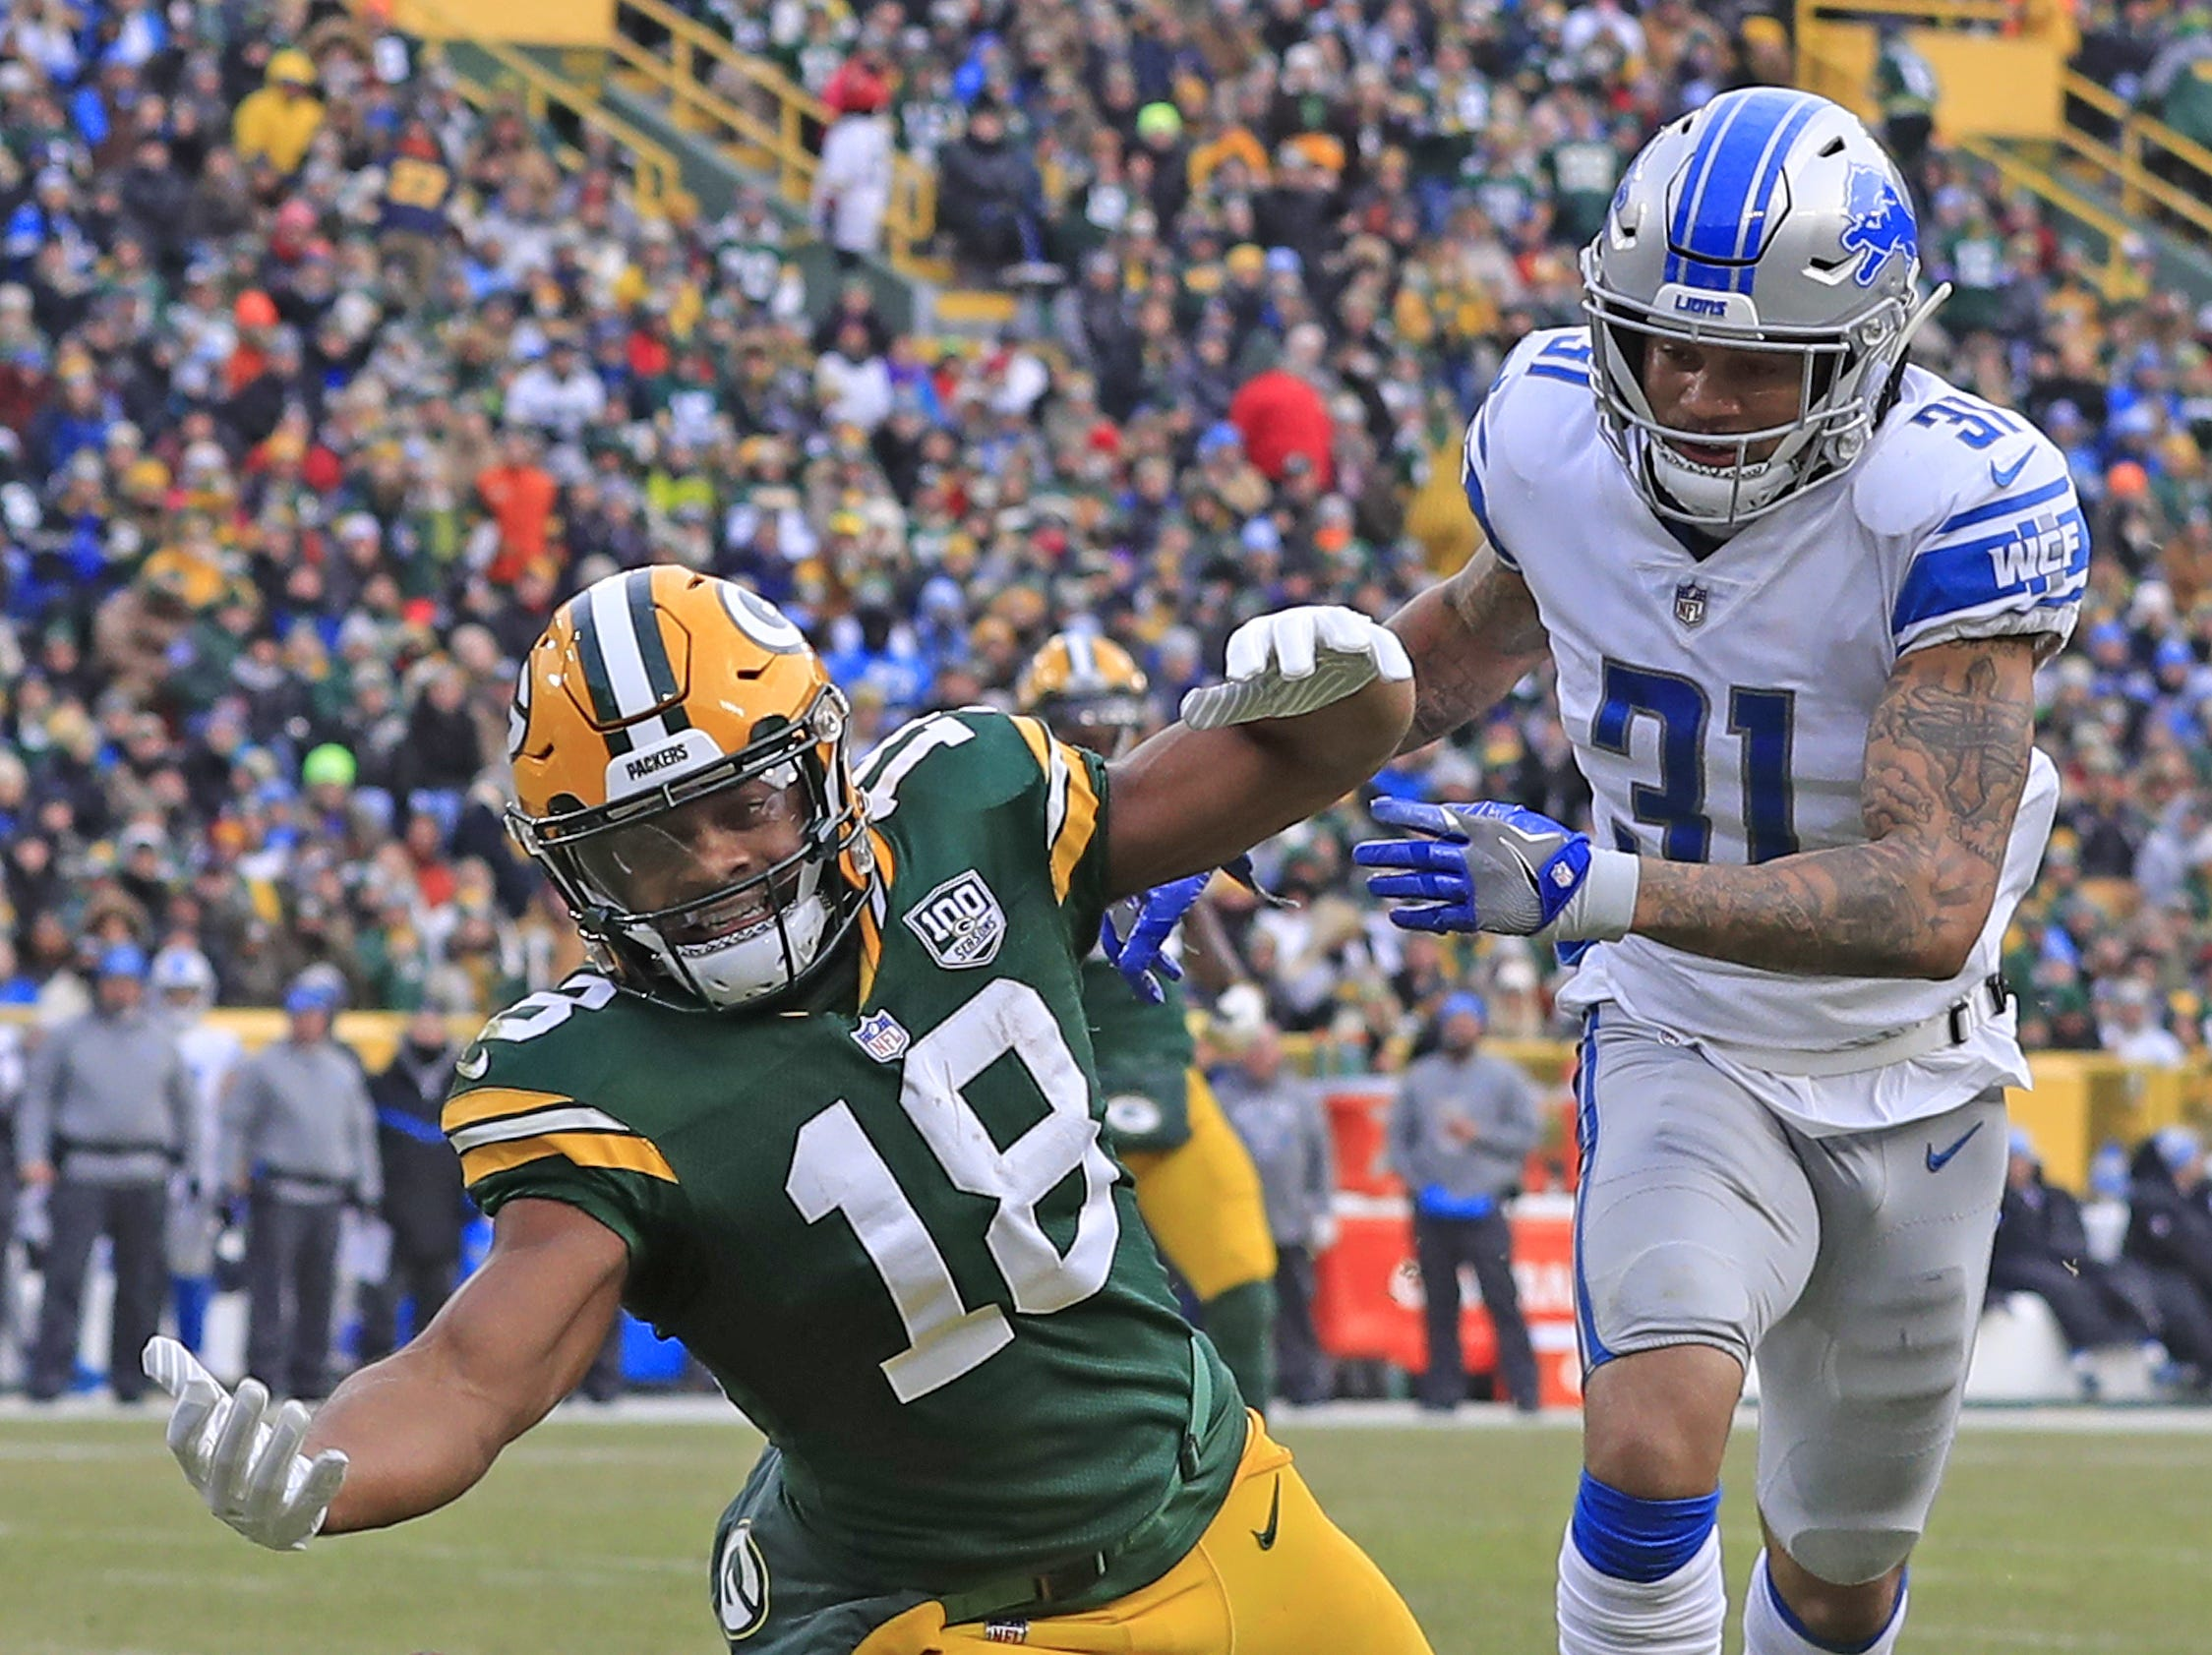 Green Bay Packers wide receiver Randall Cobb (18) can't hold on to a pass against Detroit Lions cornerback Teez Tabor (31) in the fourth quarter at Lambeau Field on Sunday, December 30, 2018 in Green Bay, Wis. Adam Wesley/USA TODAY NETWORK-Wis